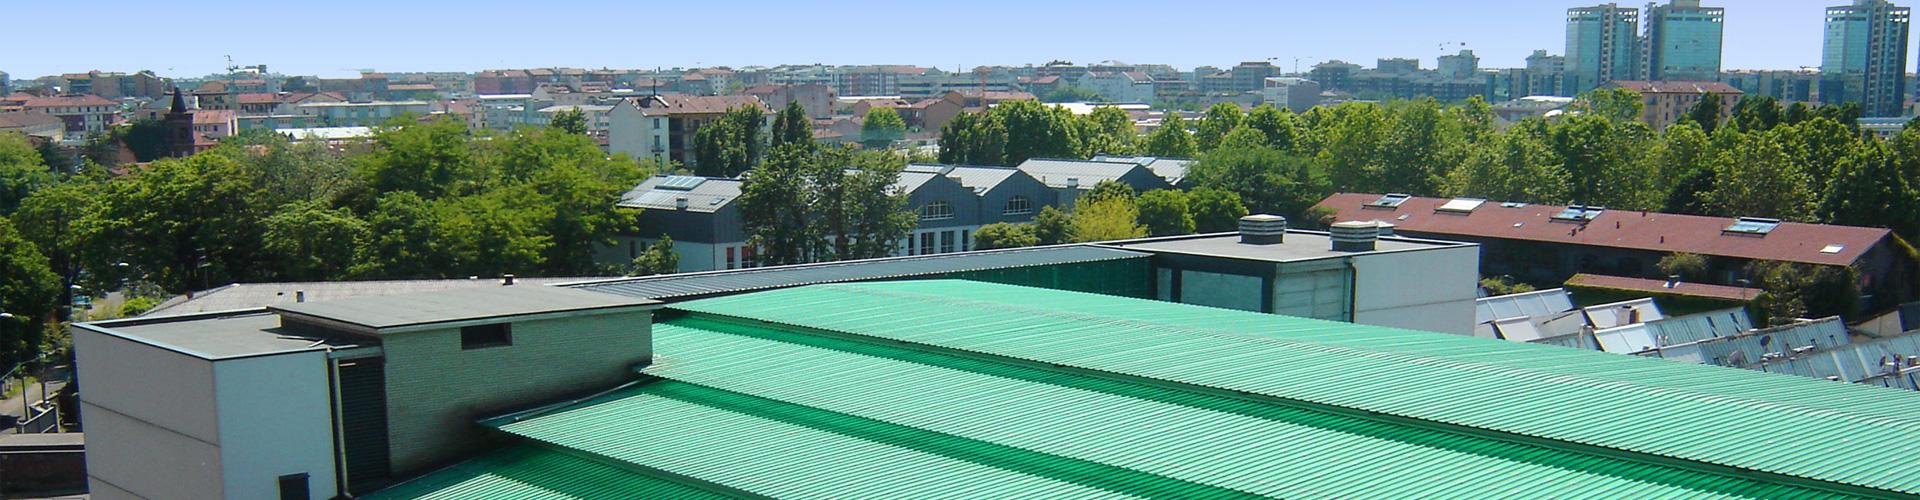 Plastic sheets, roof lights, frp panels